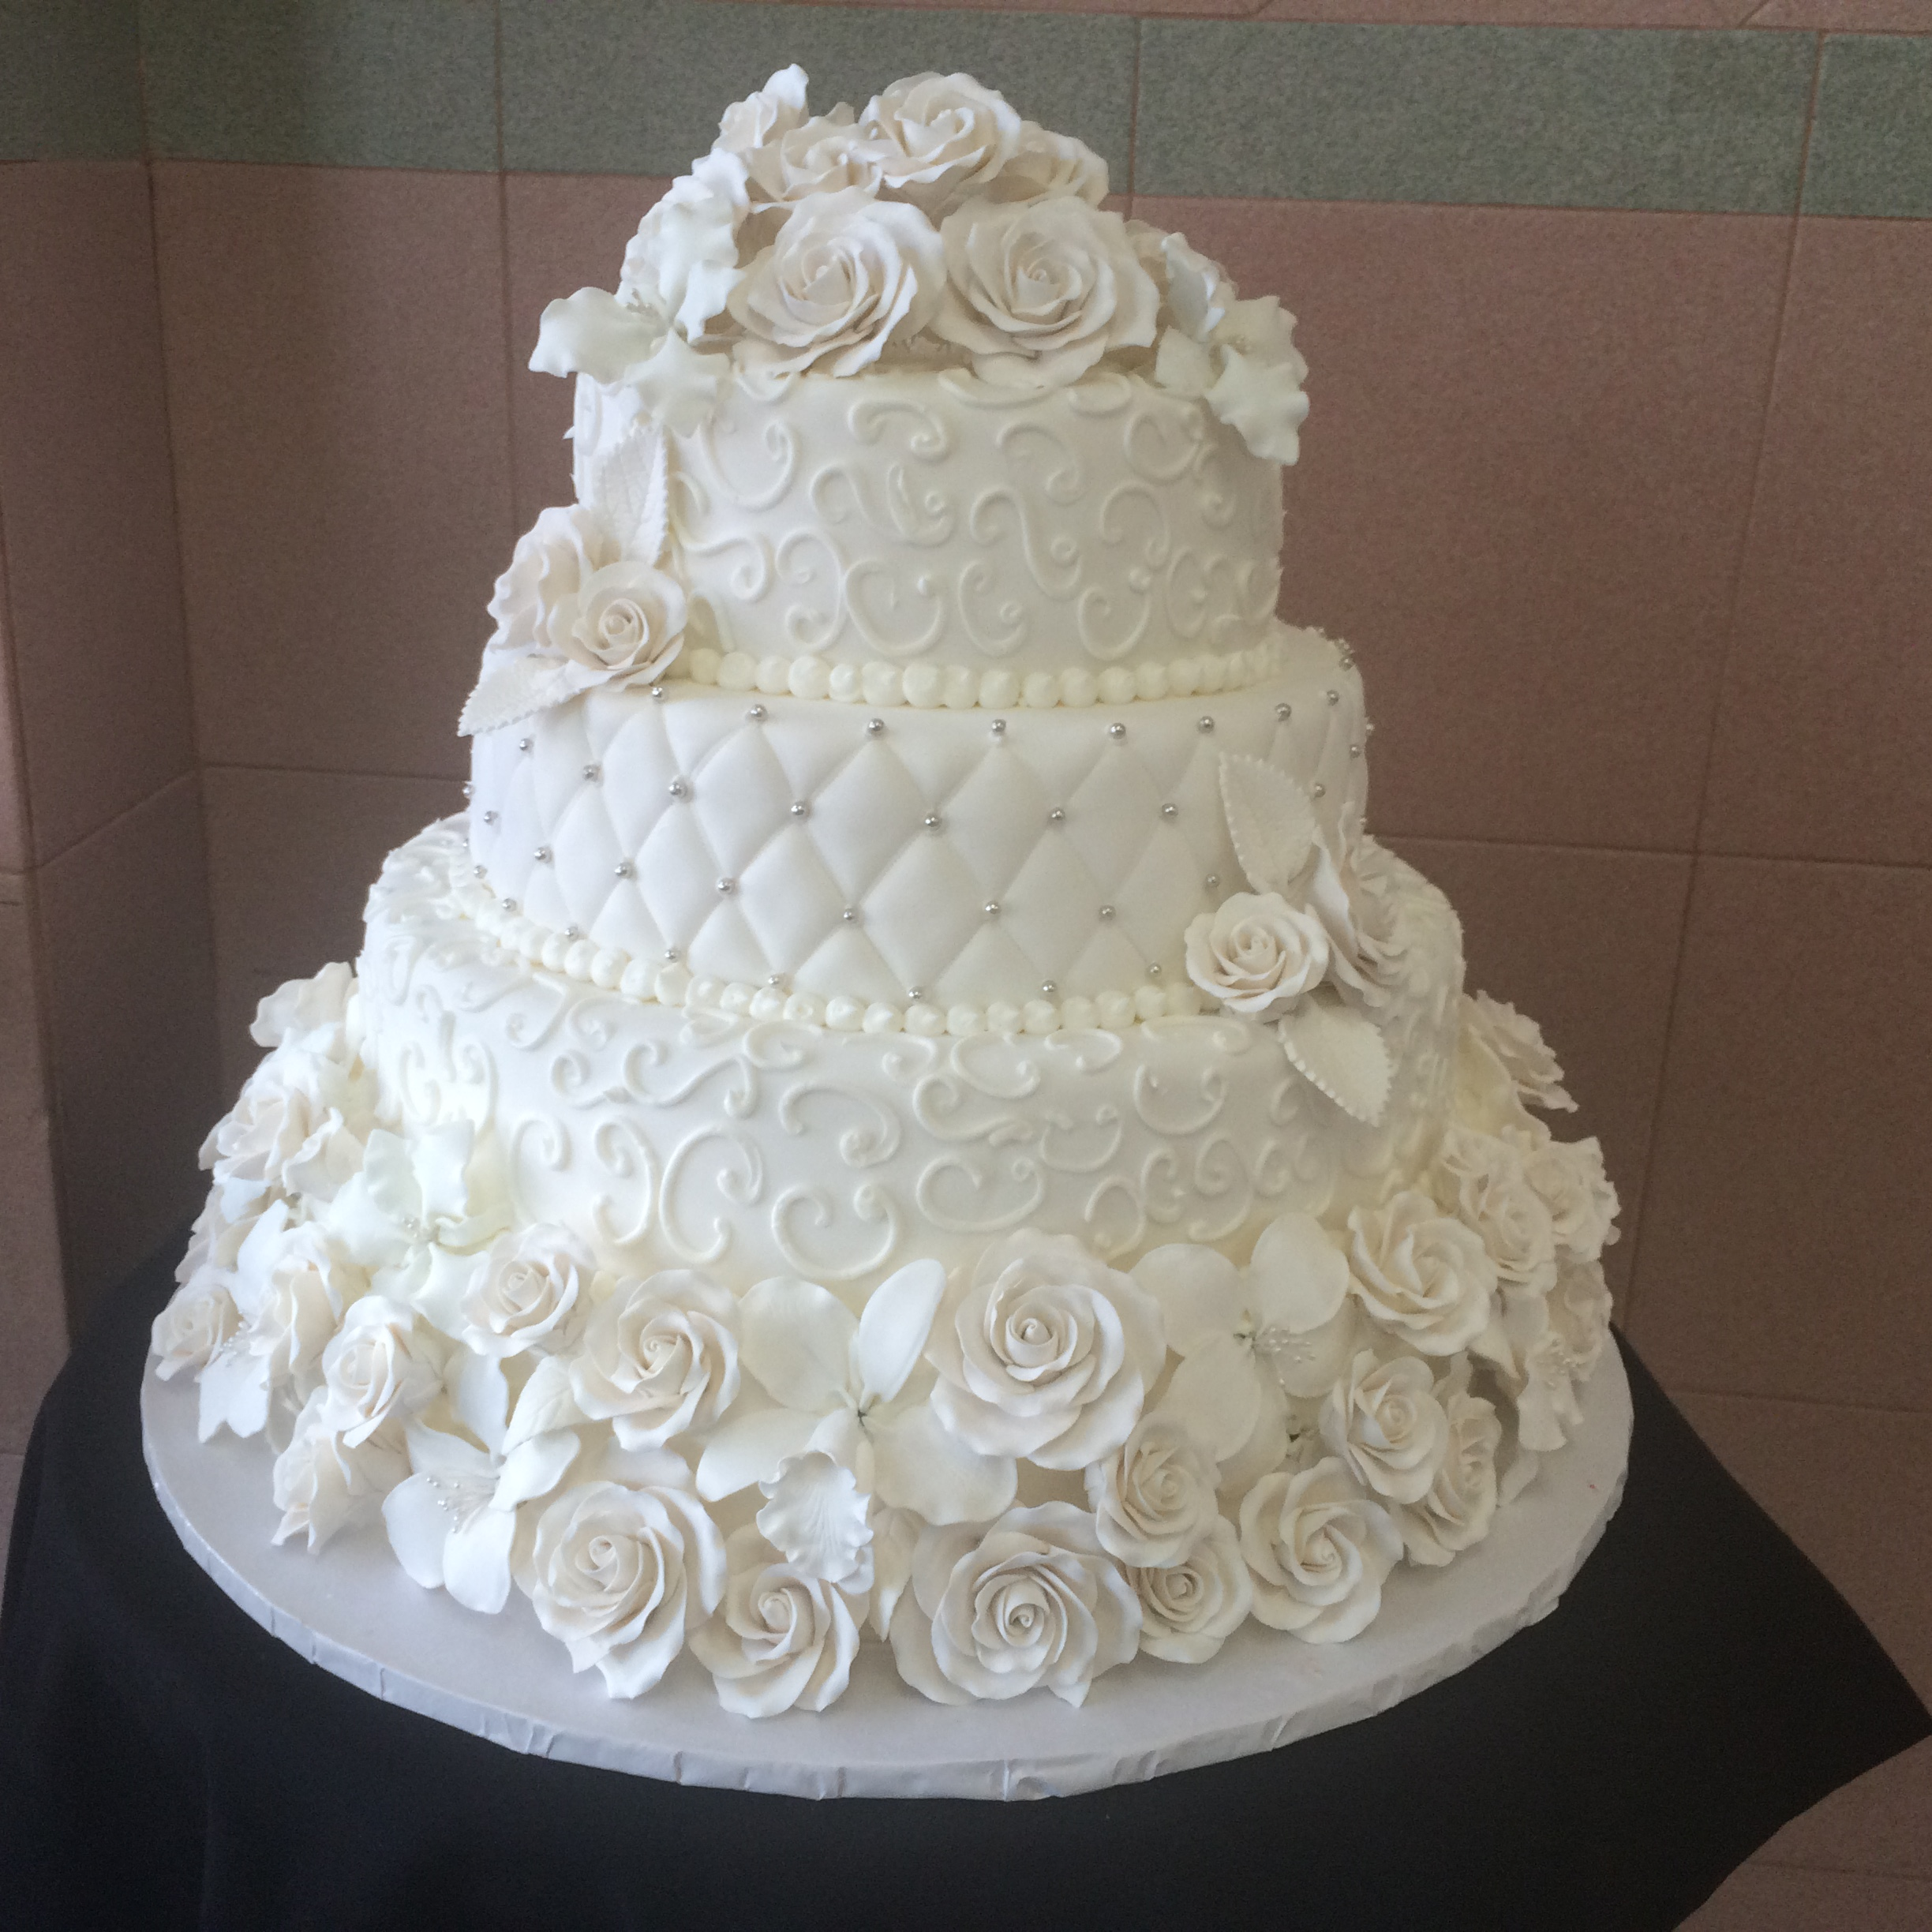 Assorted Rolled Fondant Flowers around 1st Tier. Scroll Work. Quilted with Silver. Scroll Work. Topped with Flowers.jpg